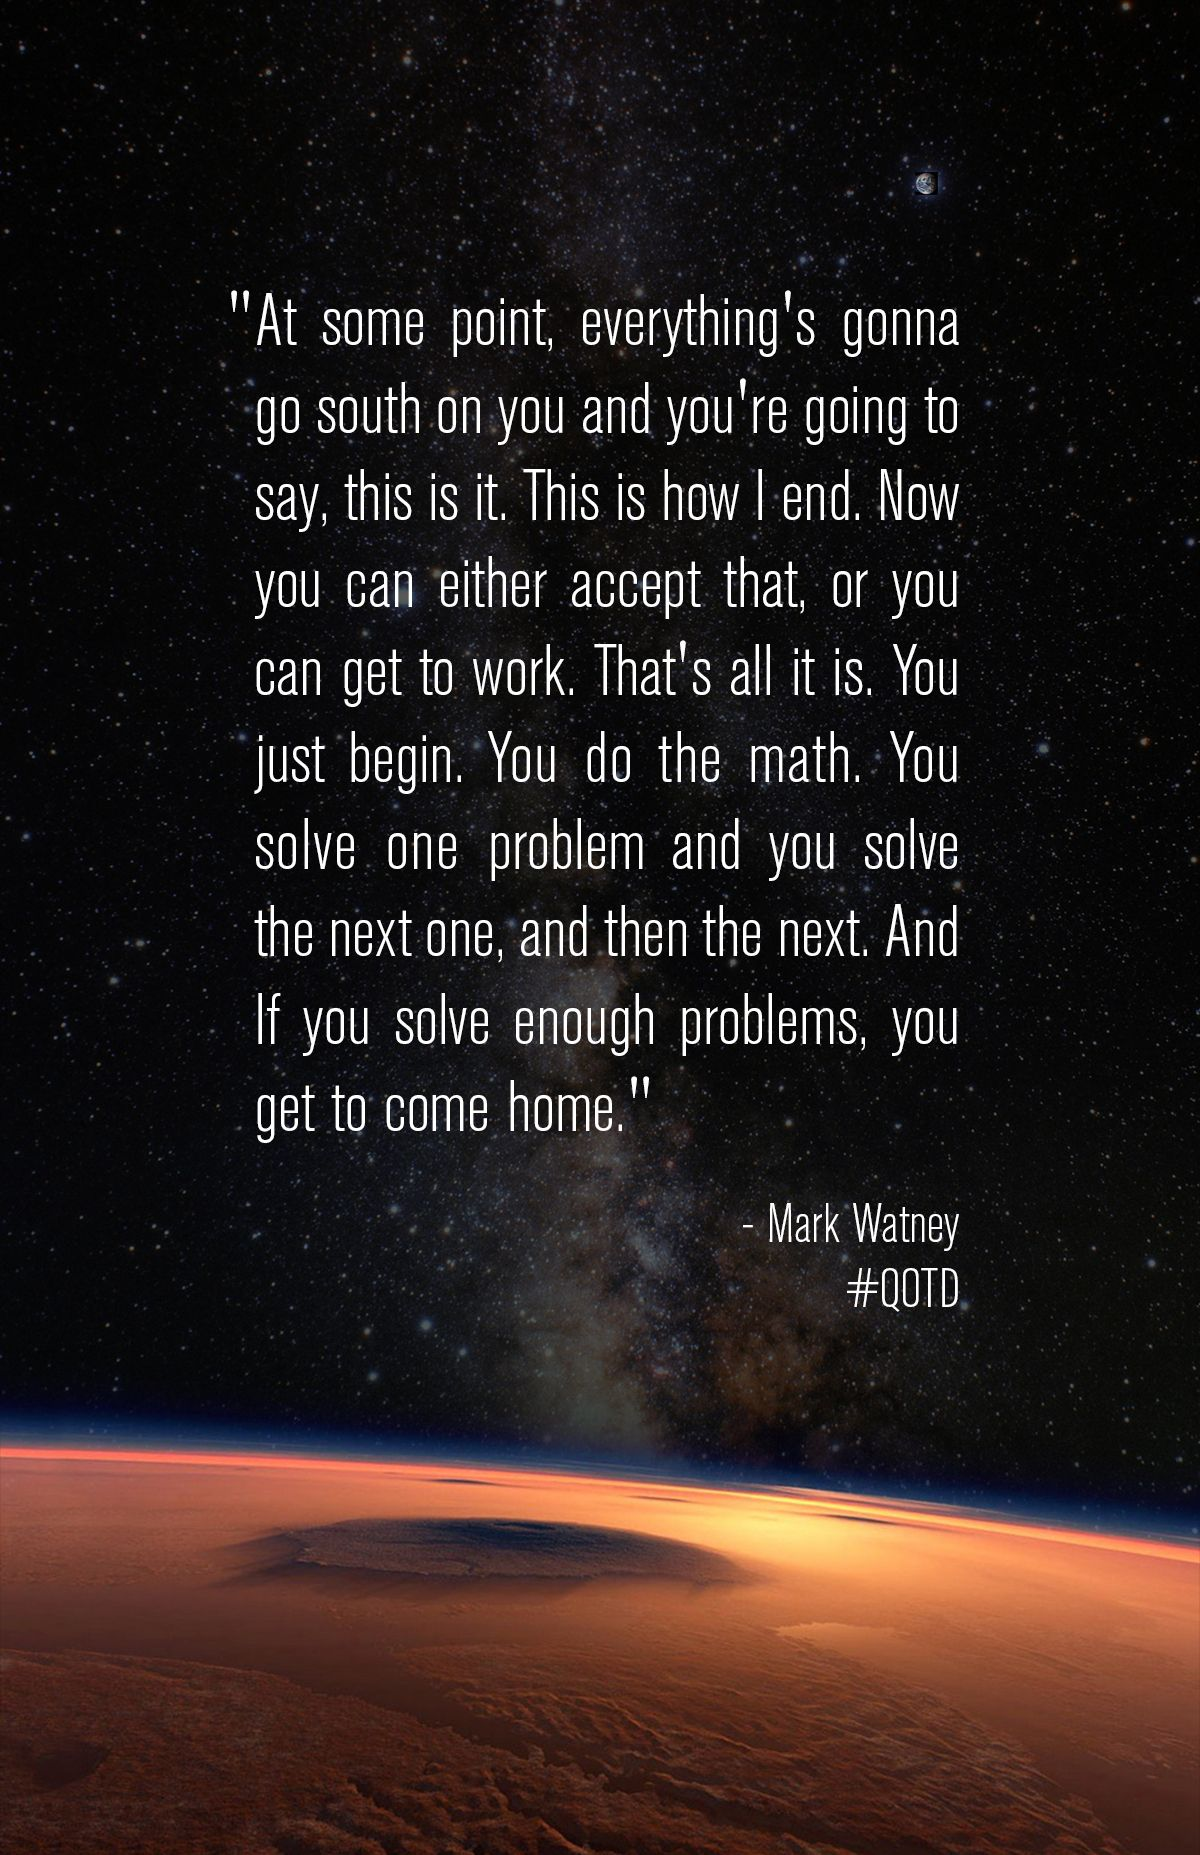 Qotd Such A Great Life Lesson To Take Away From The Martian Life Lessons Great Life High School Students [ 1855 x 1200 Pixel ]